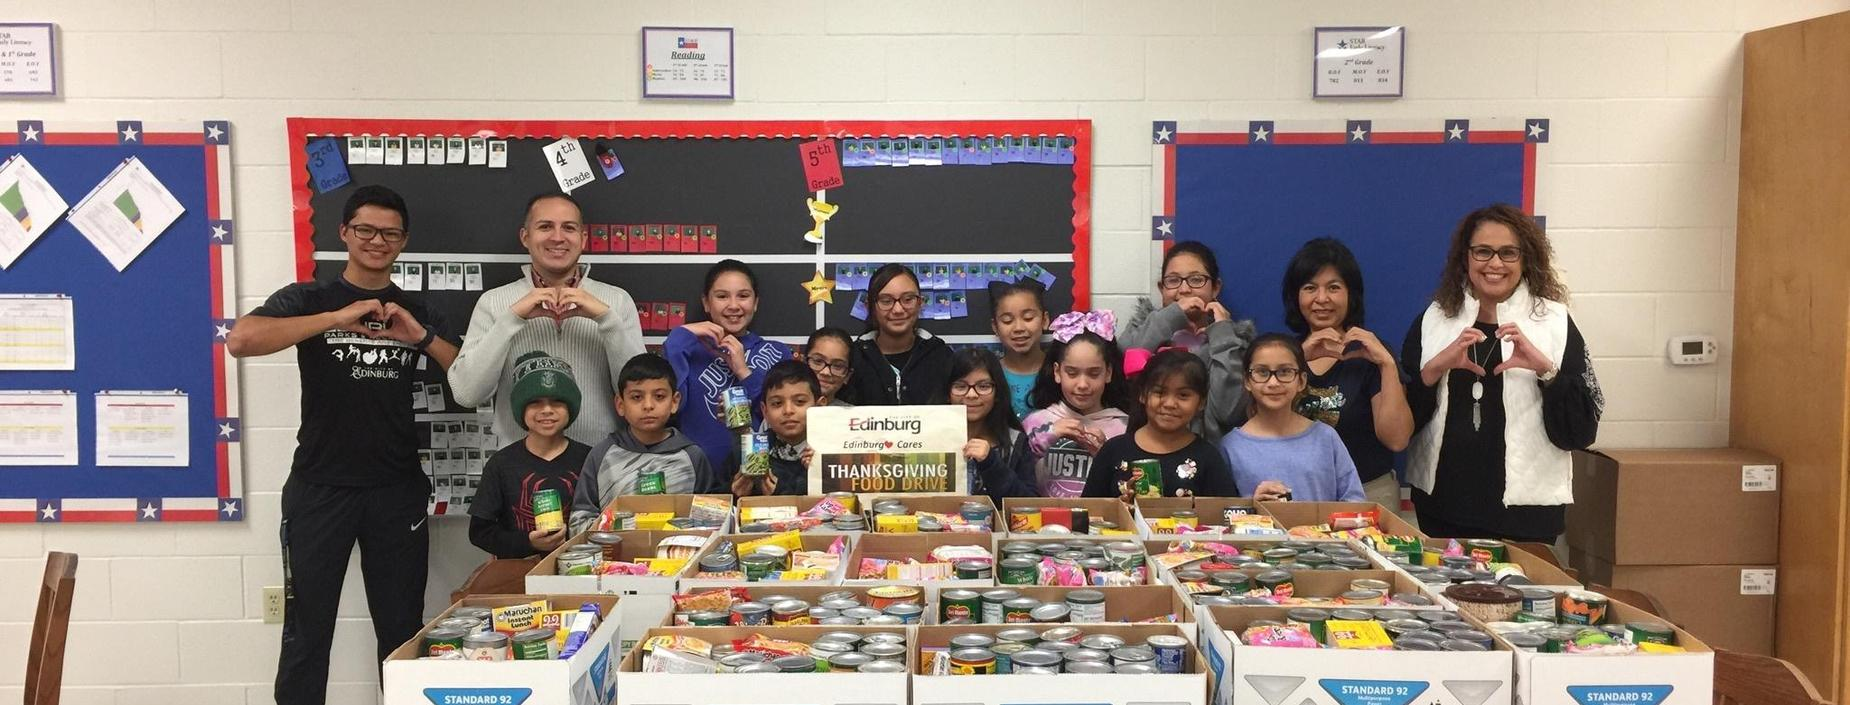 Student Council canned food drive